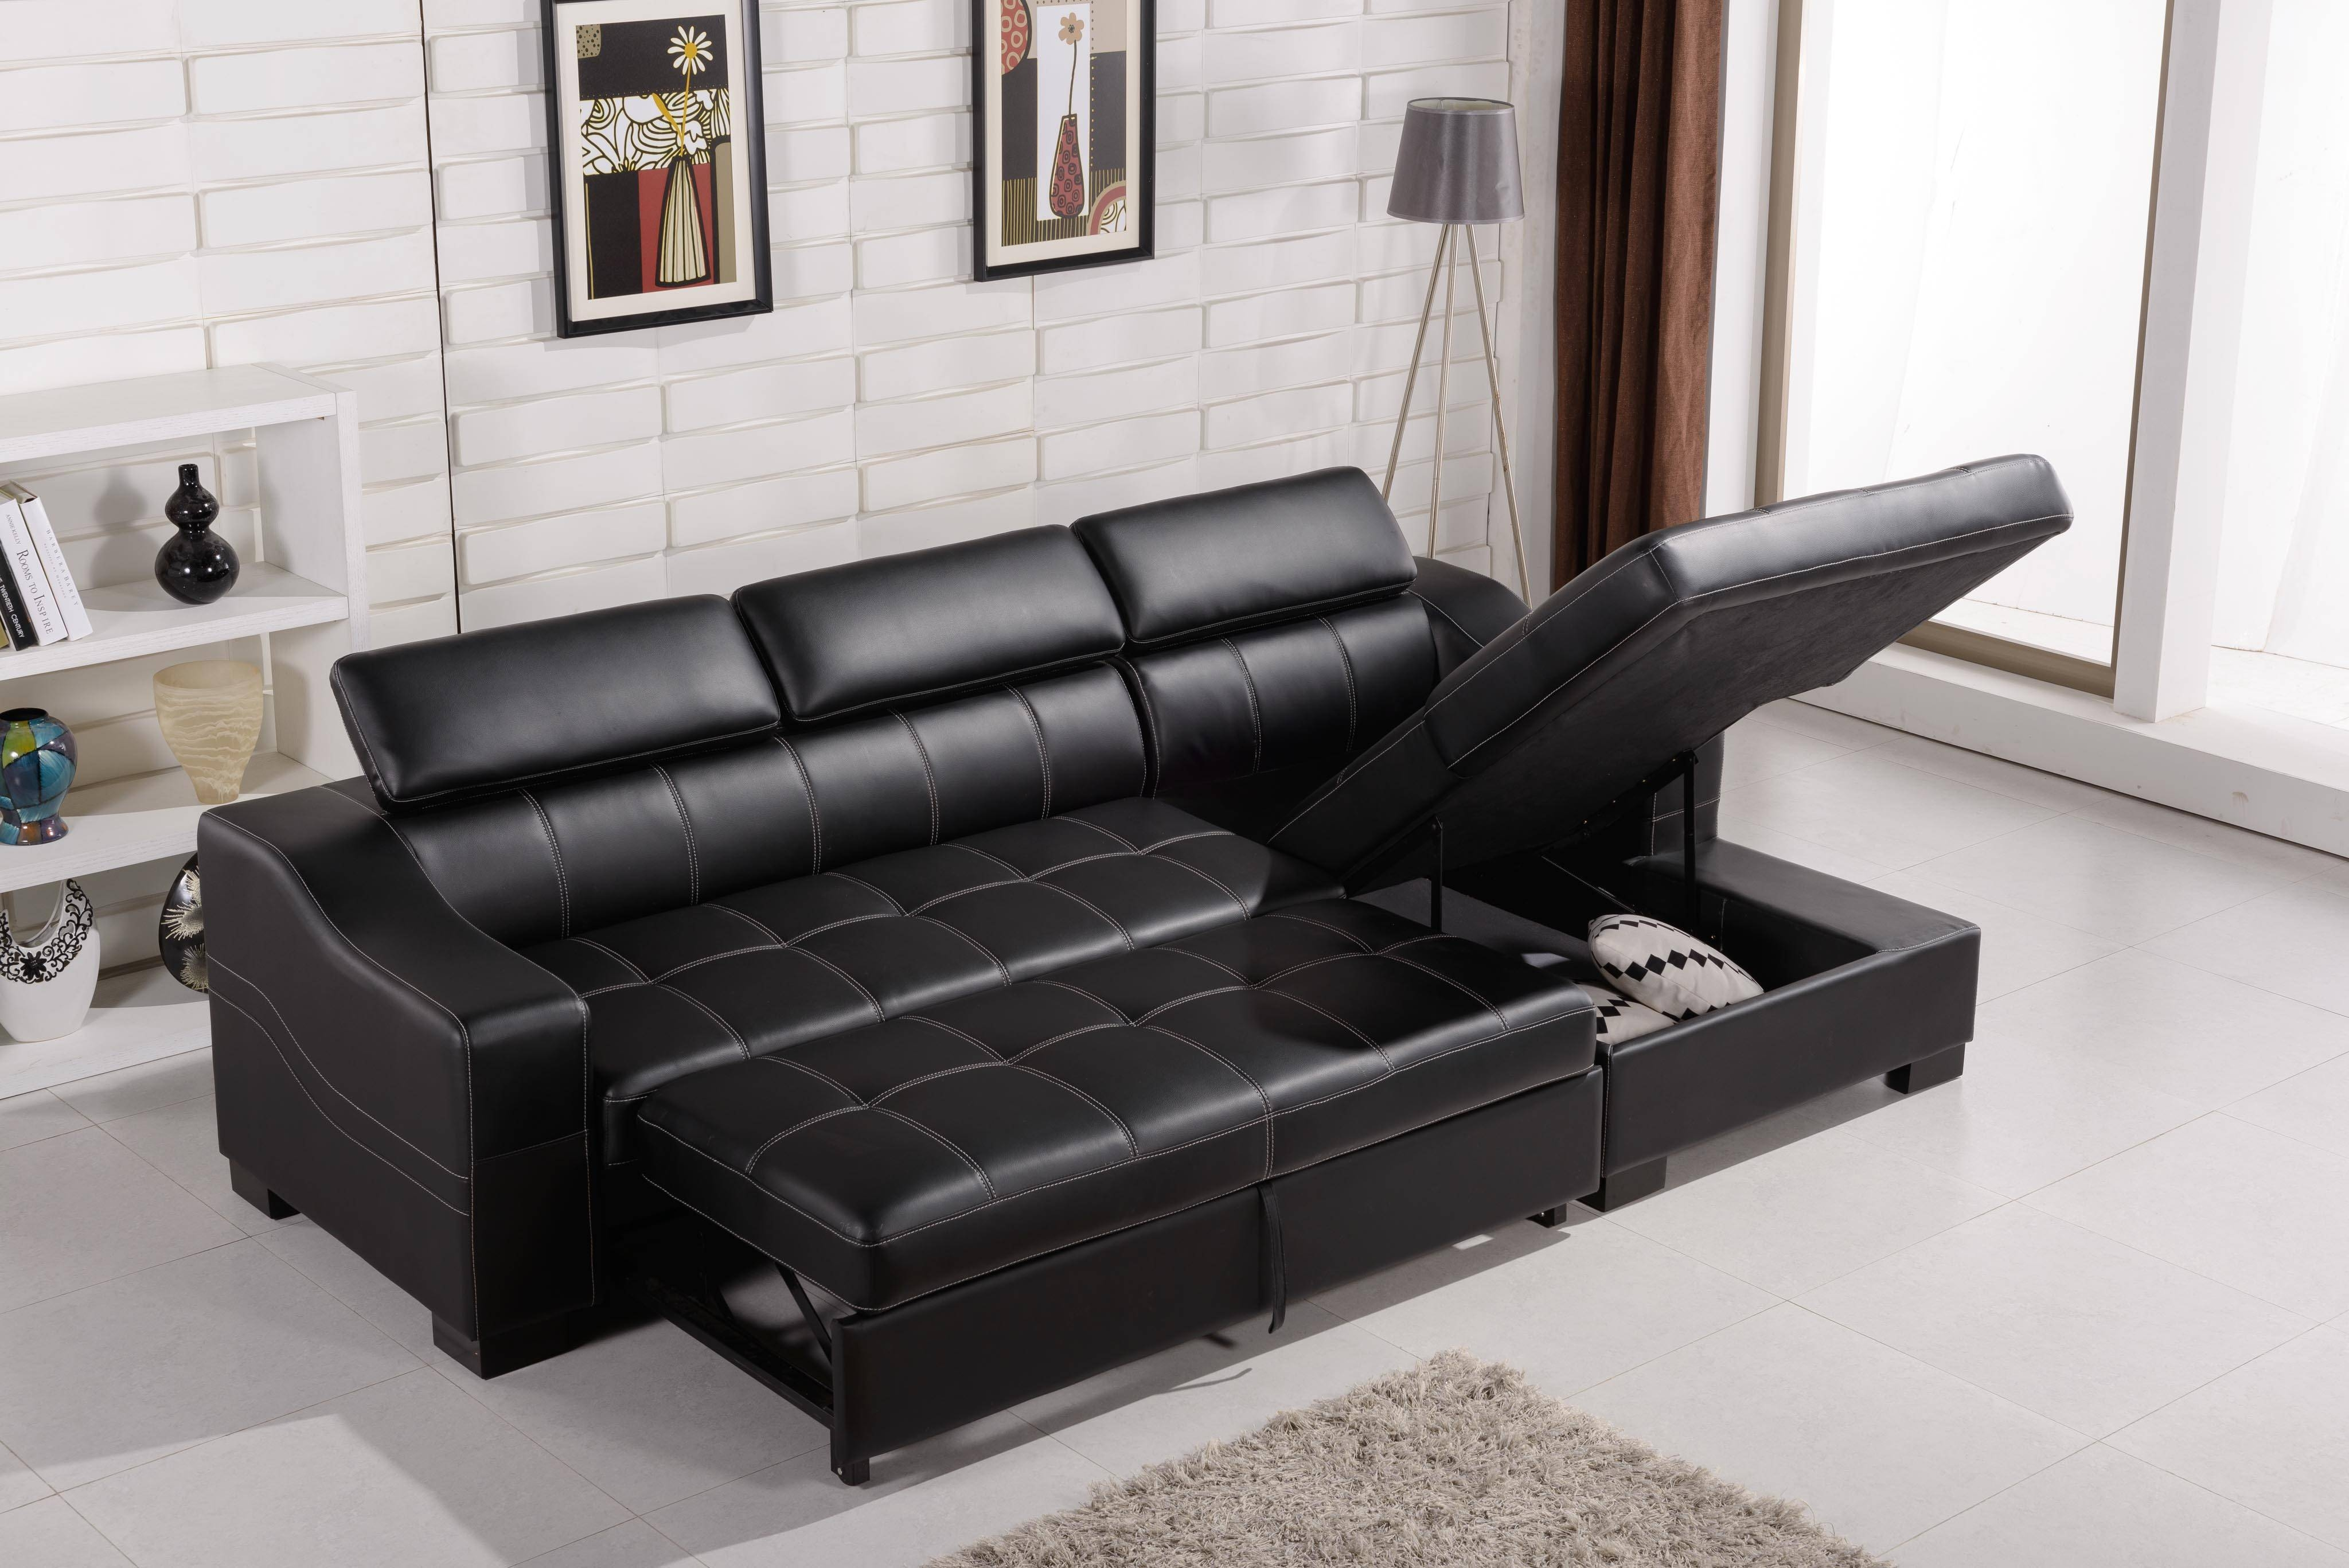 Funiture: Sleeper Sofa Ideas For Living Room Using Black Leather throughout Leather Storage Sofas (Image 12 of 30)